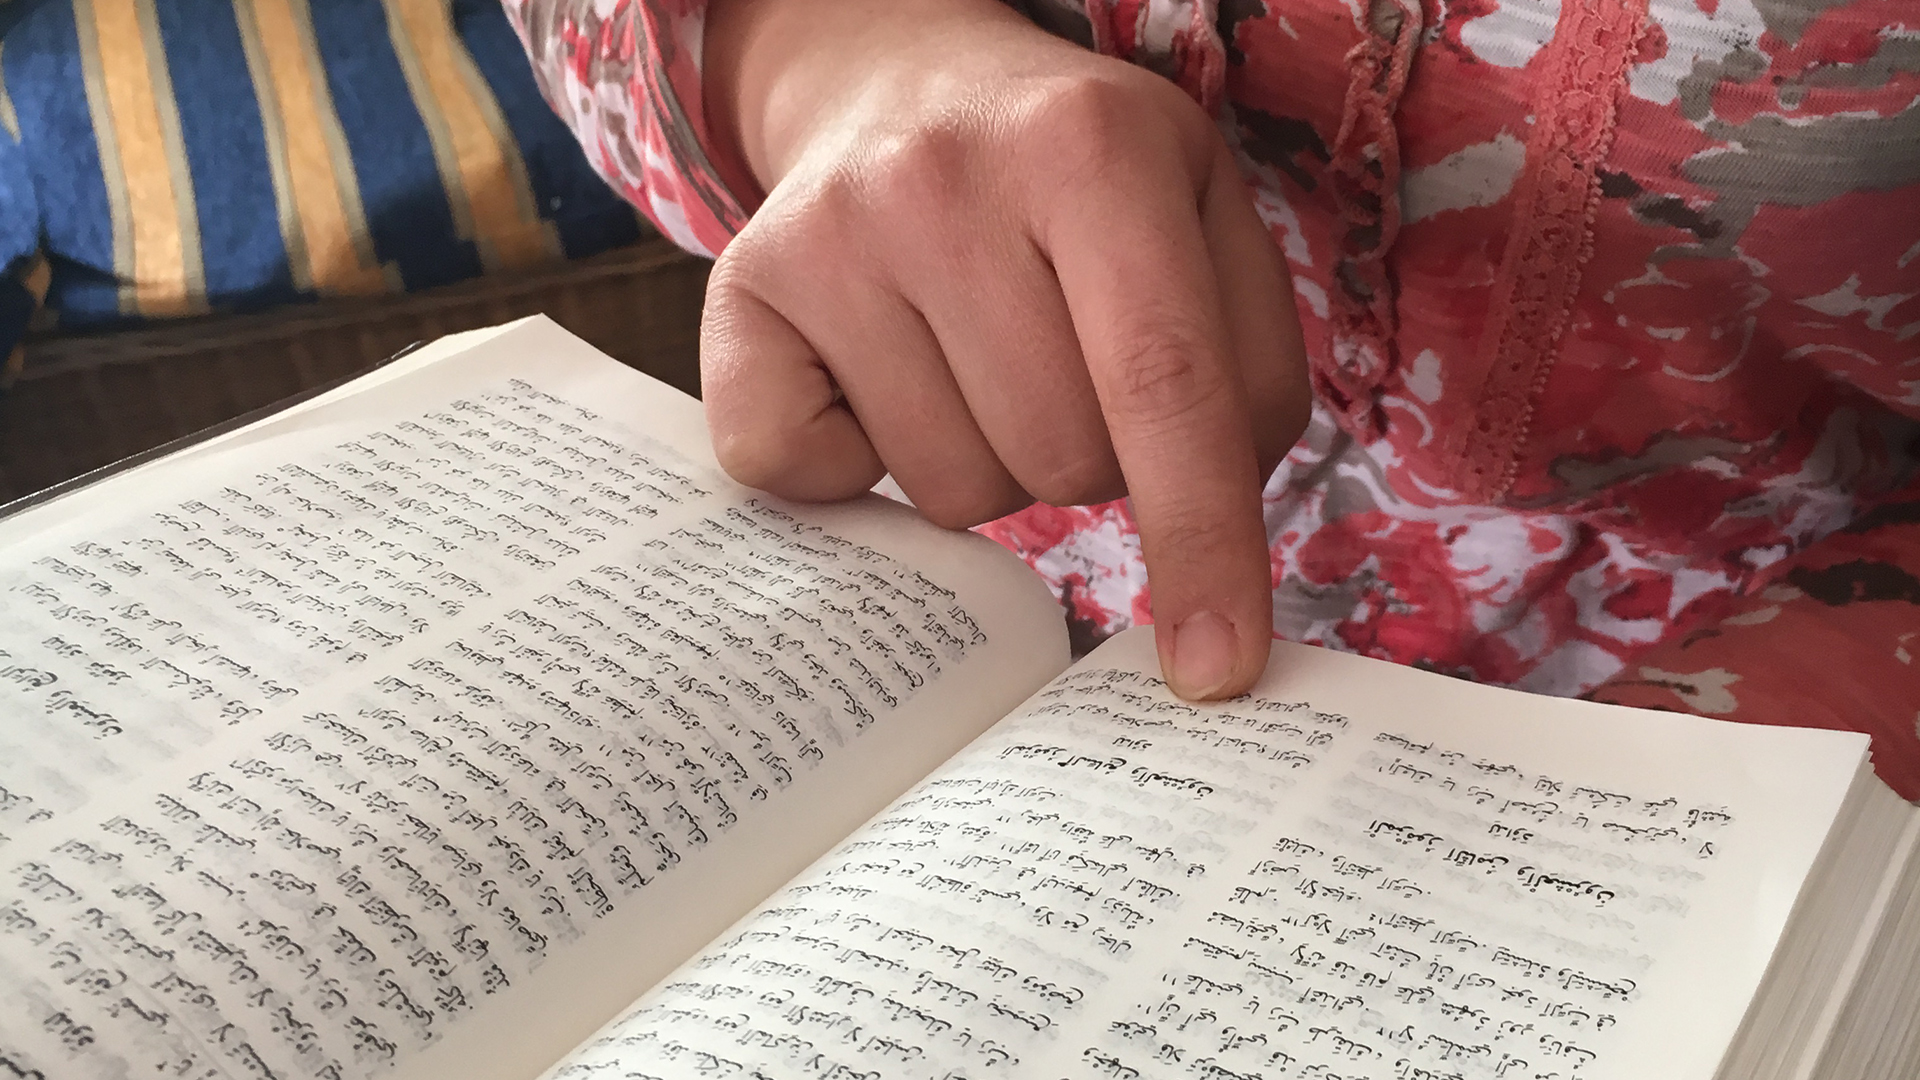 Give the Bible to Iraqi Christians